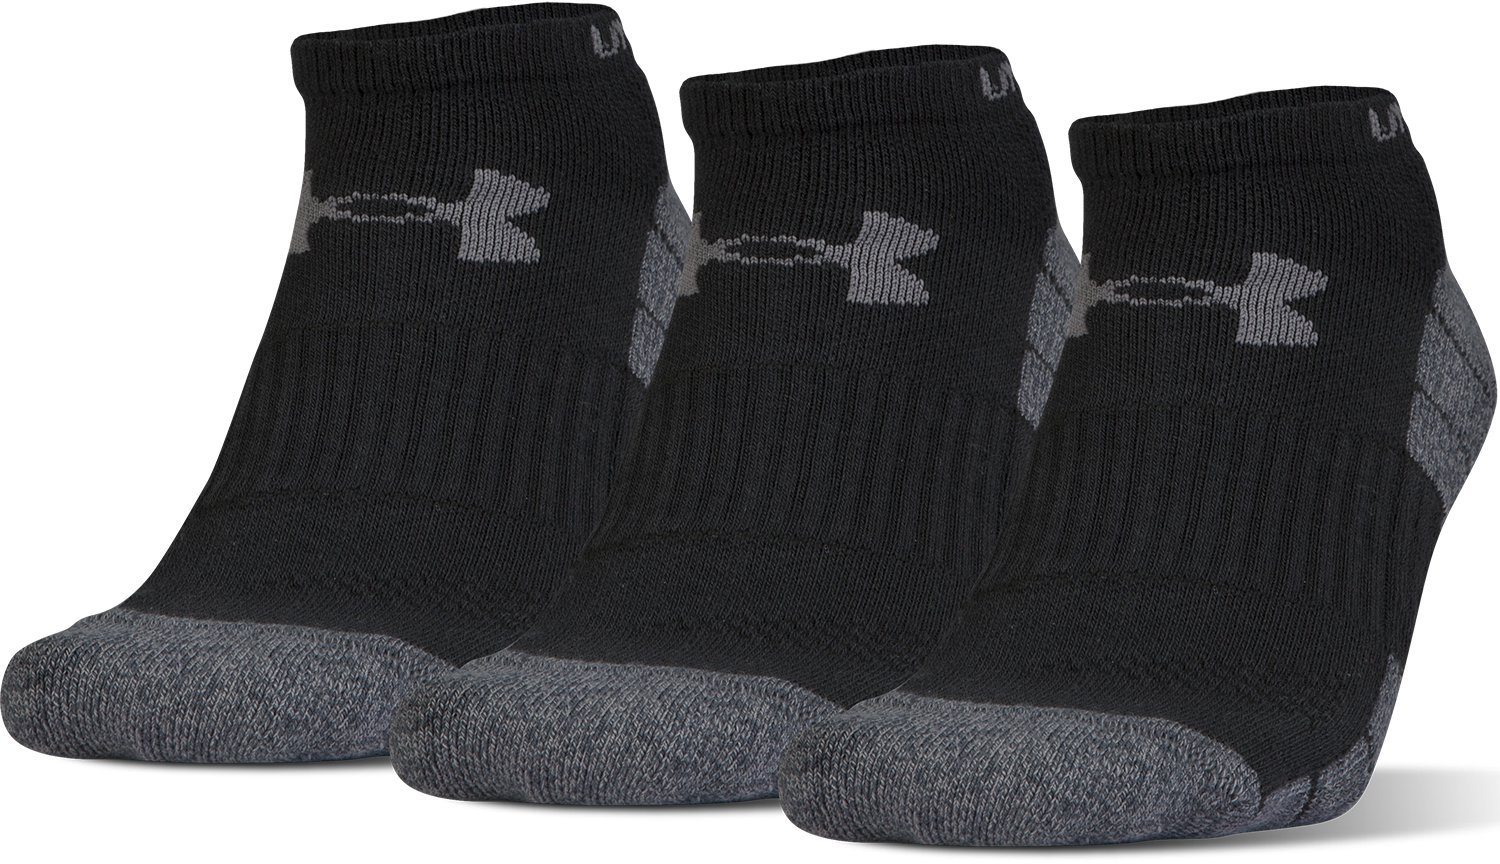 Under Armour Men's Elevated Performance No Show (3 Pack), Black Marl/Graphite, Medium by Under Armour